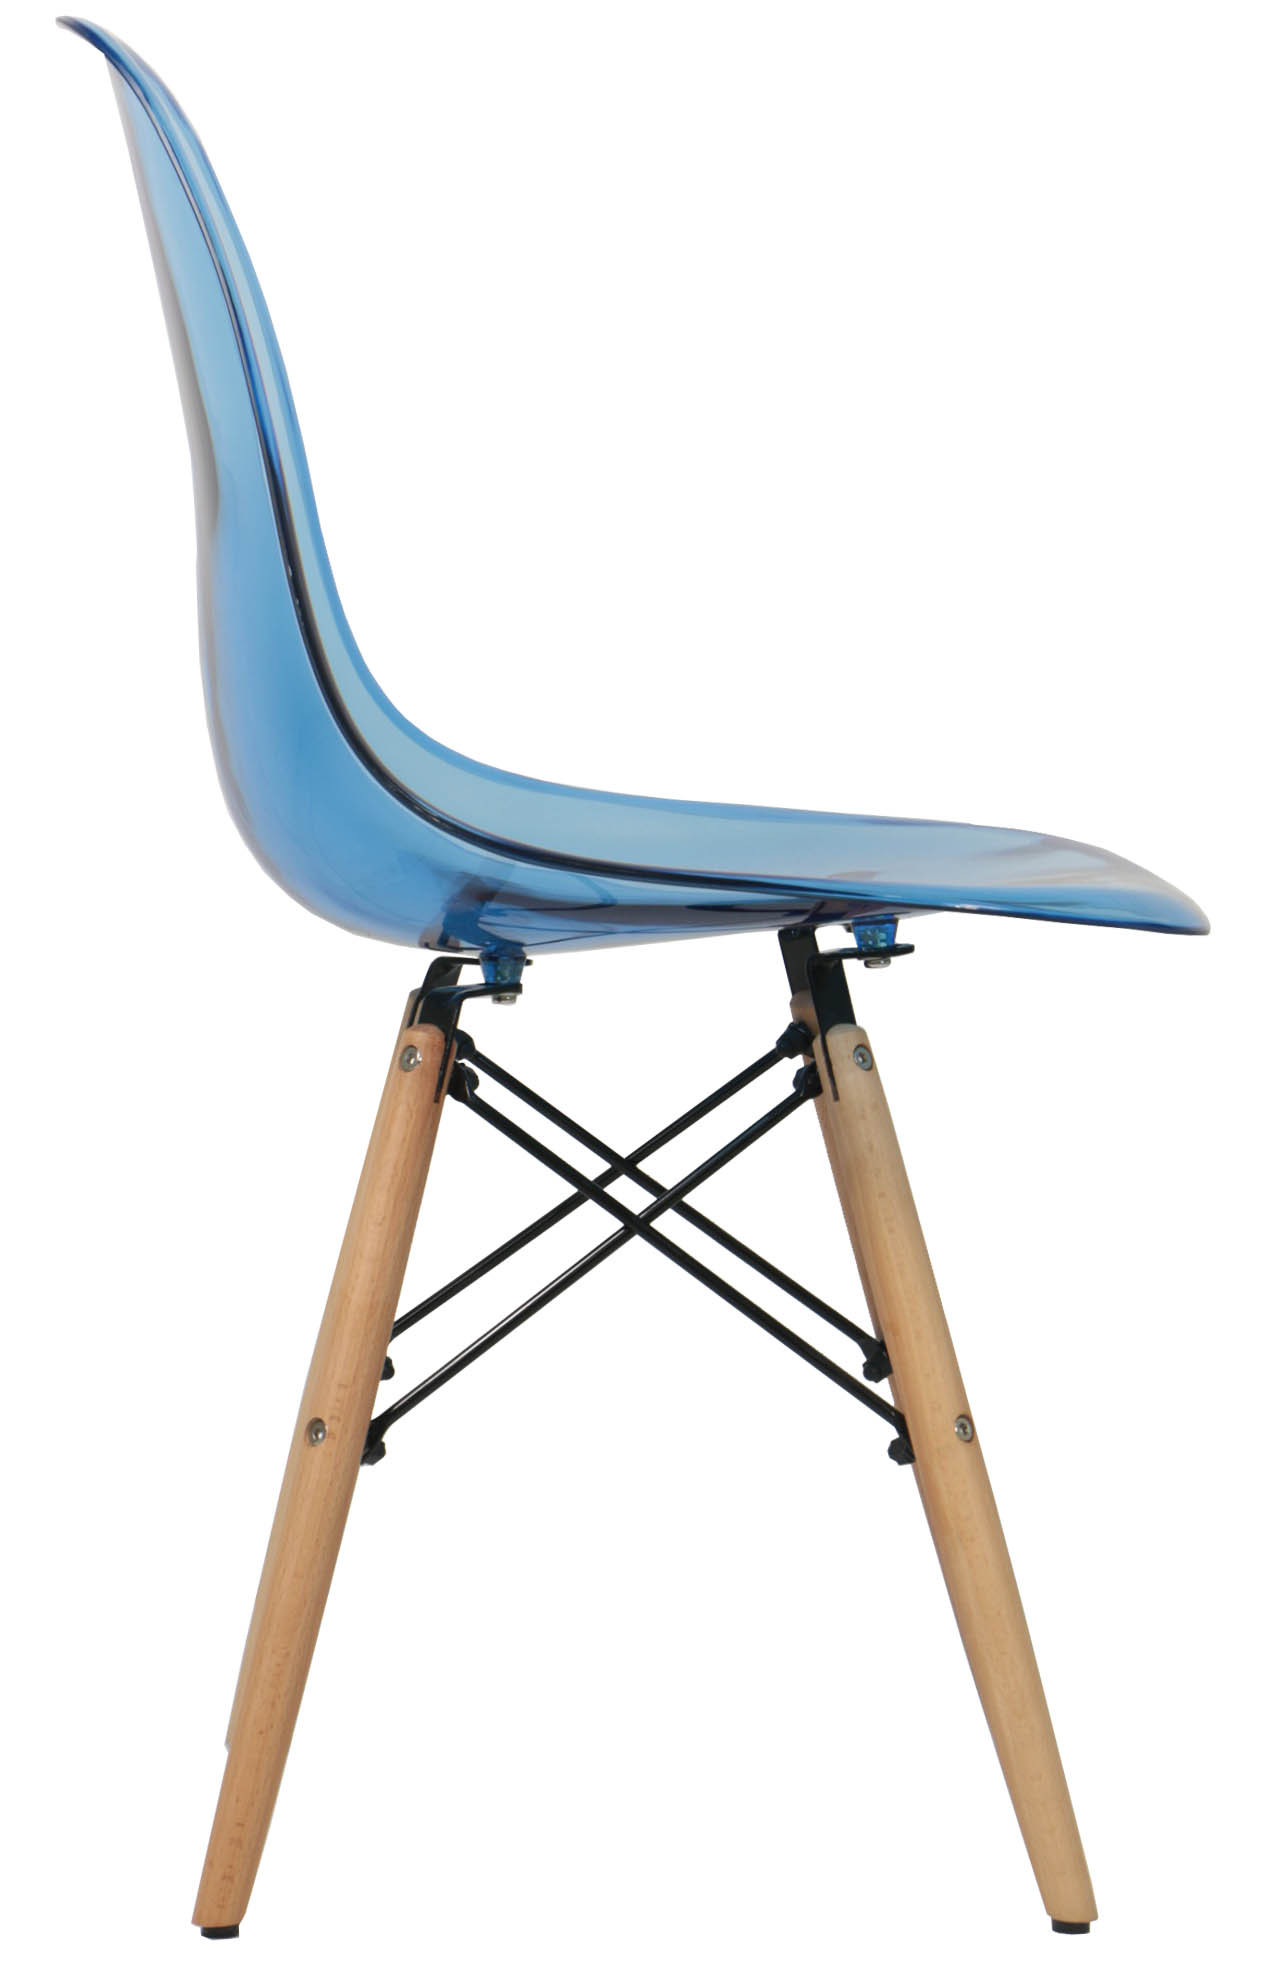 Eames clear blue replica designer chair furniture home for Imitation designer chairs